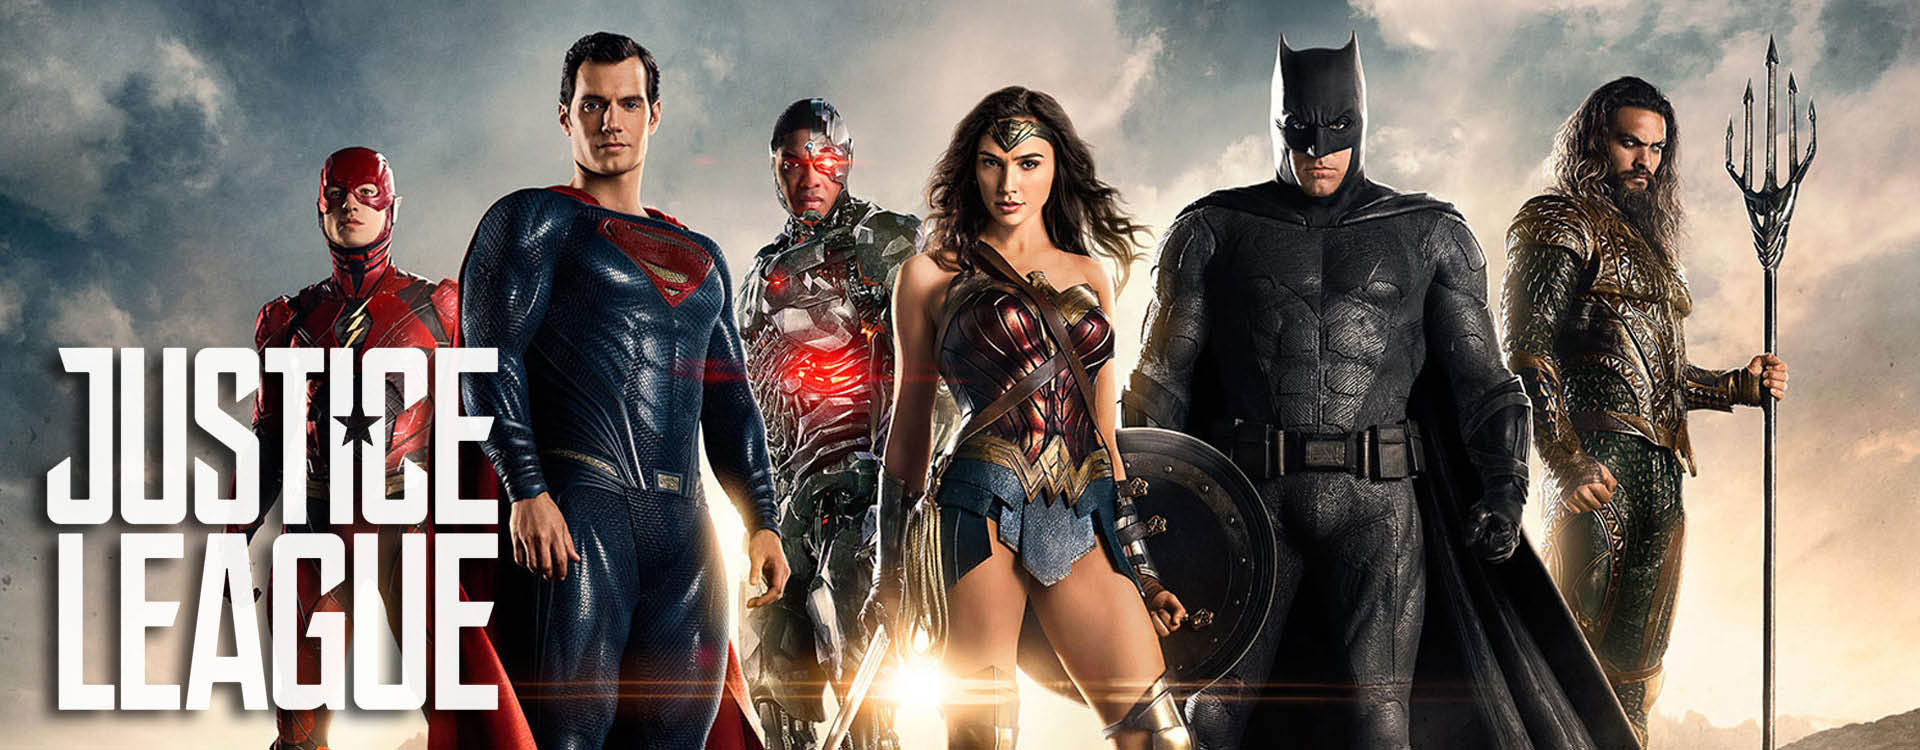 justice league costumes near me justice league costume coupon halloween costume coupons